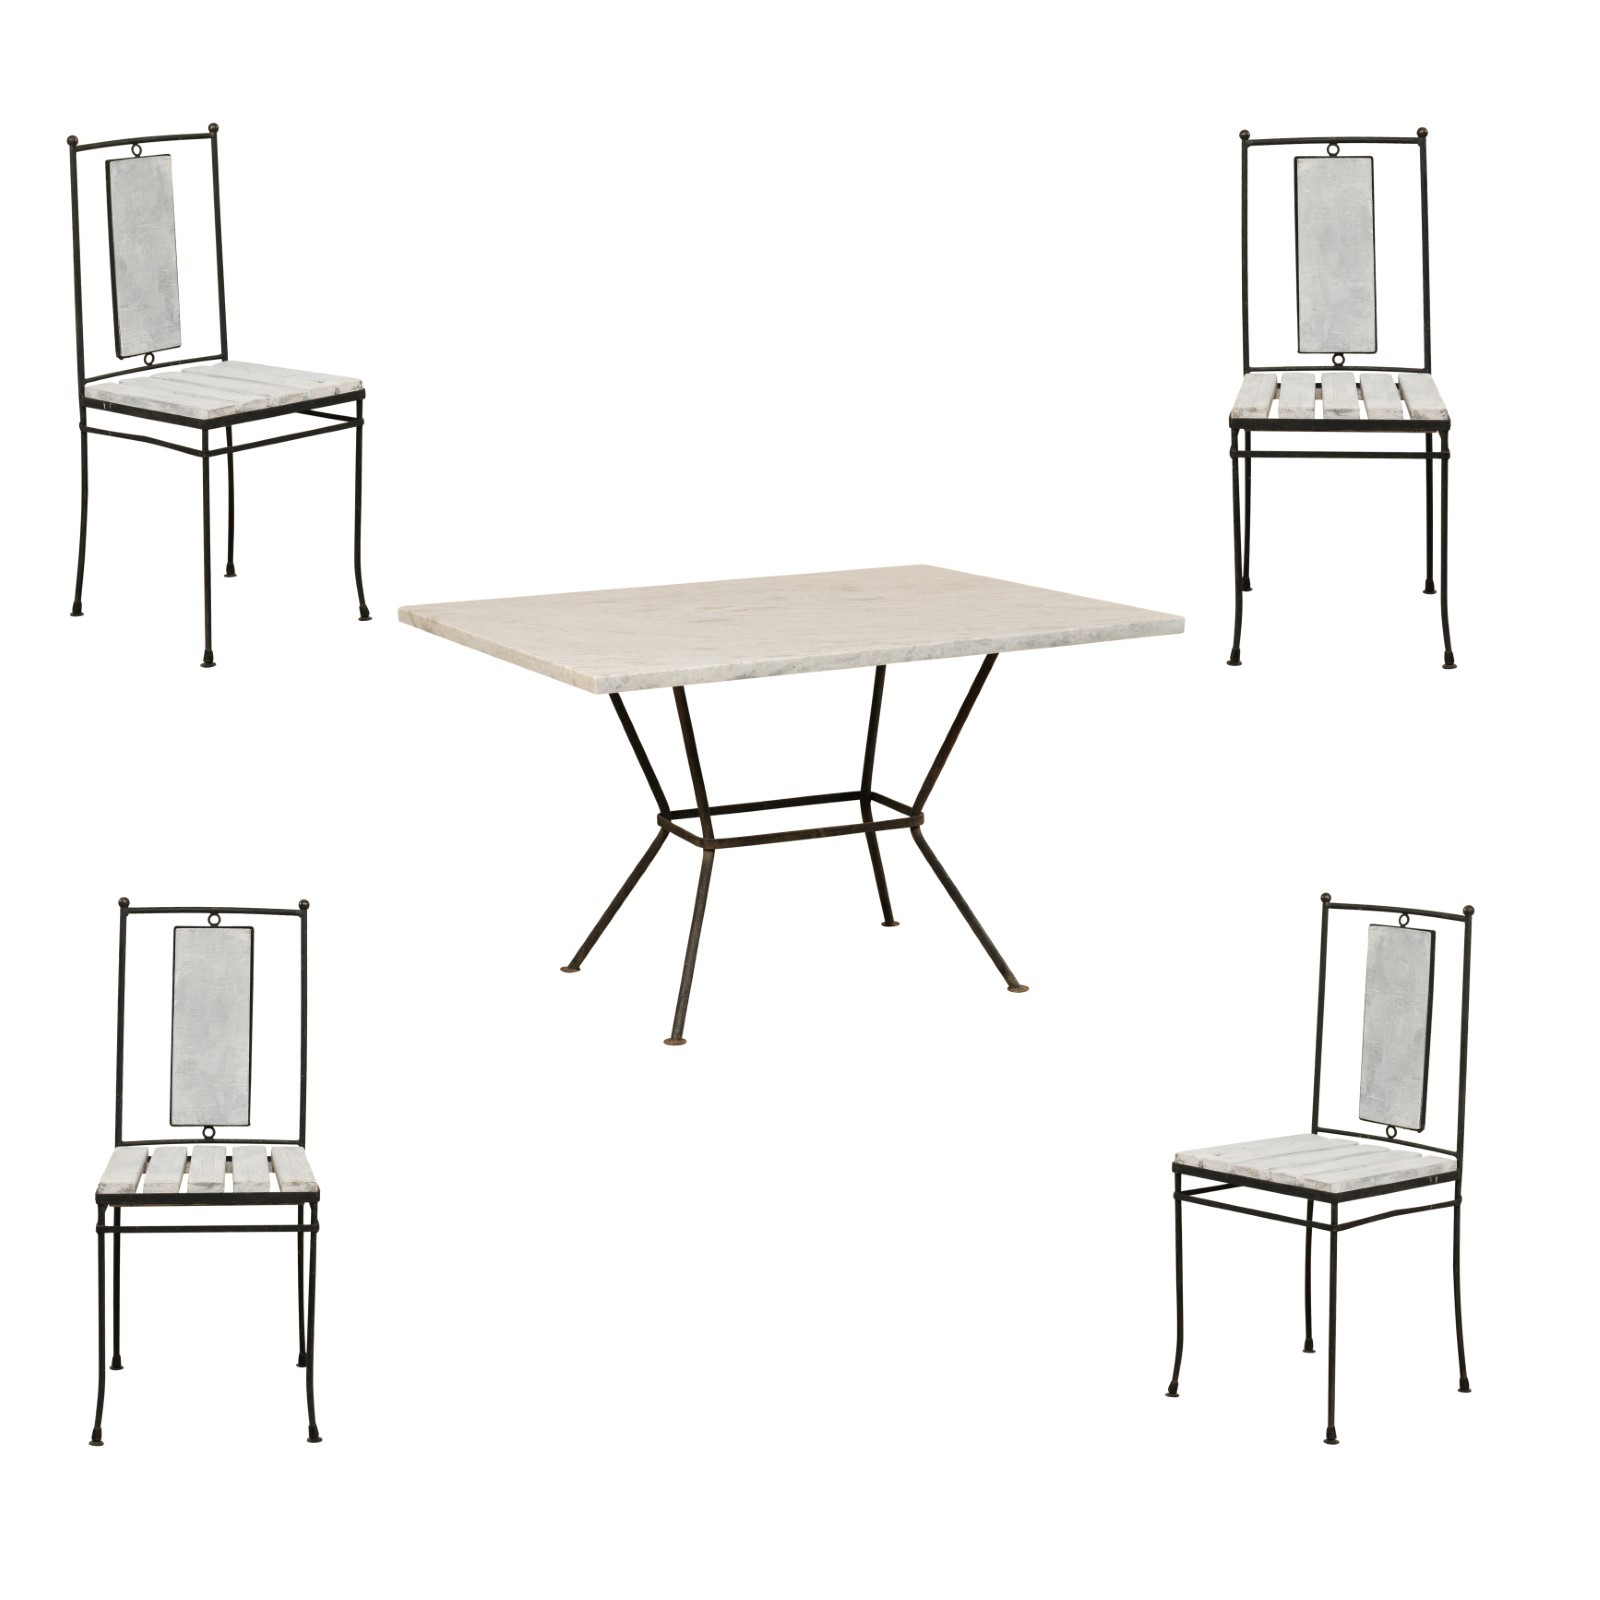 Marble Top Patio Dining Set w/4 Chairs